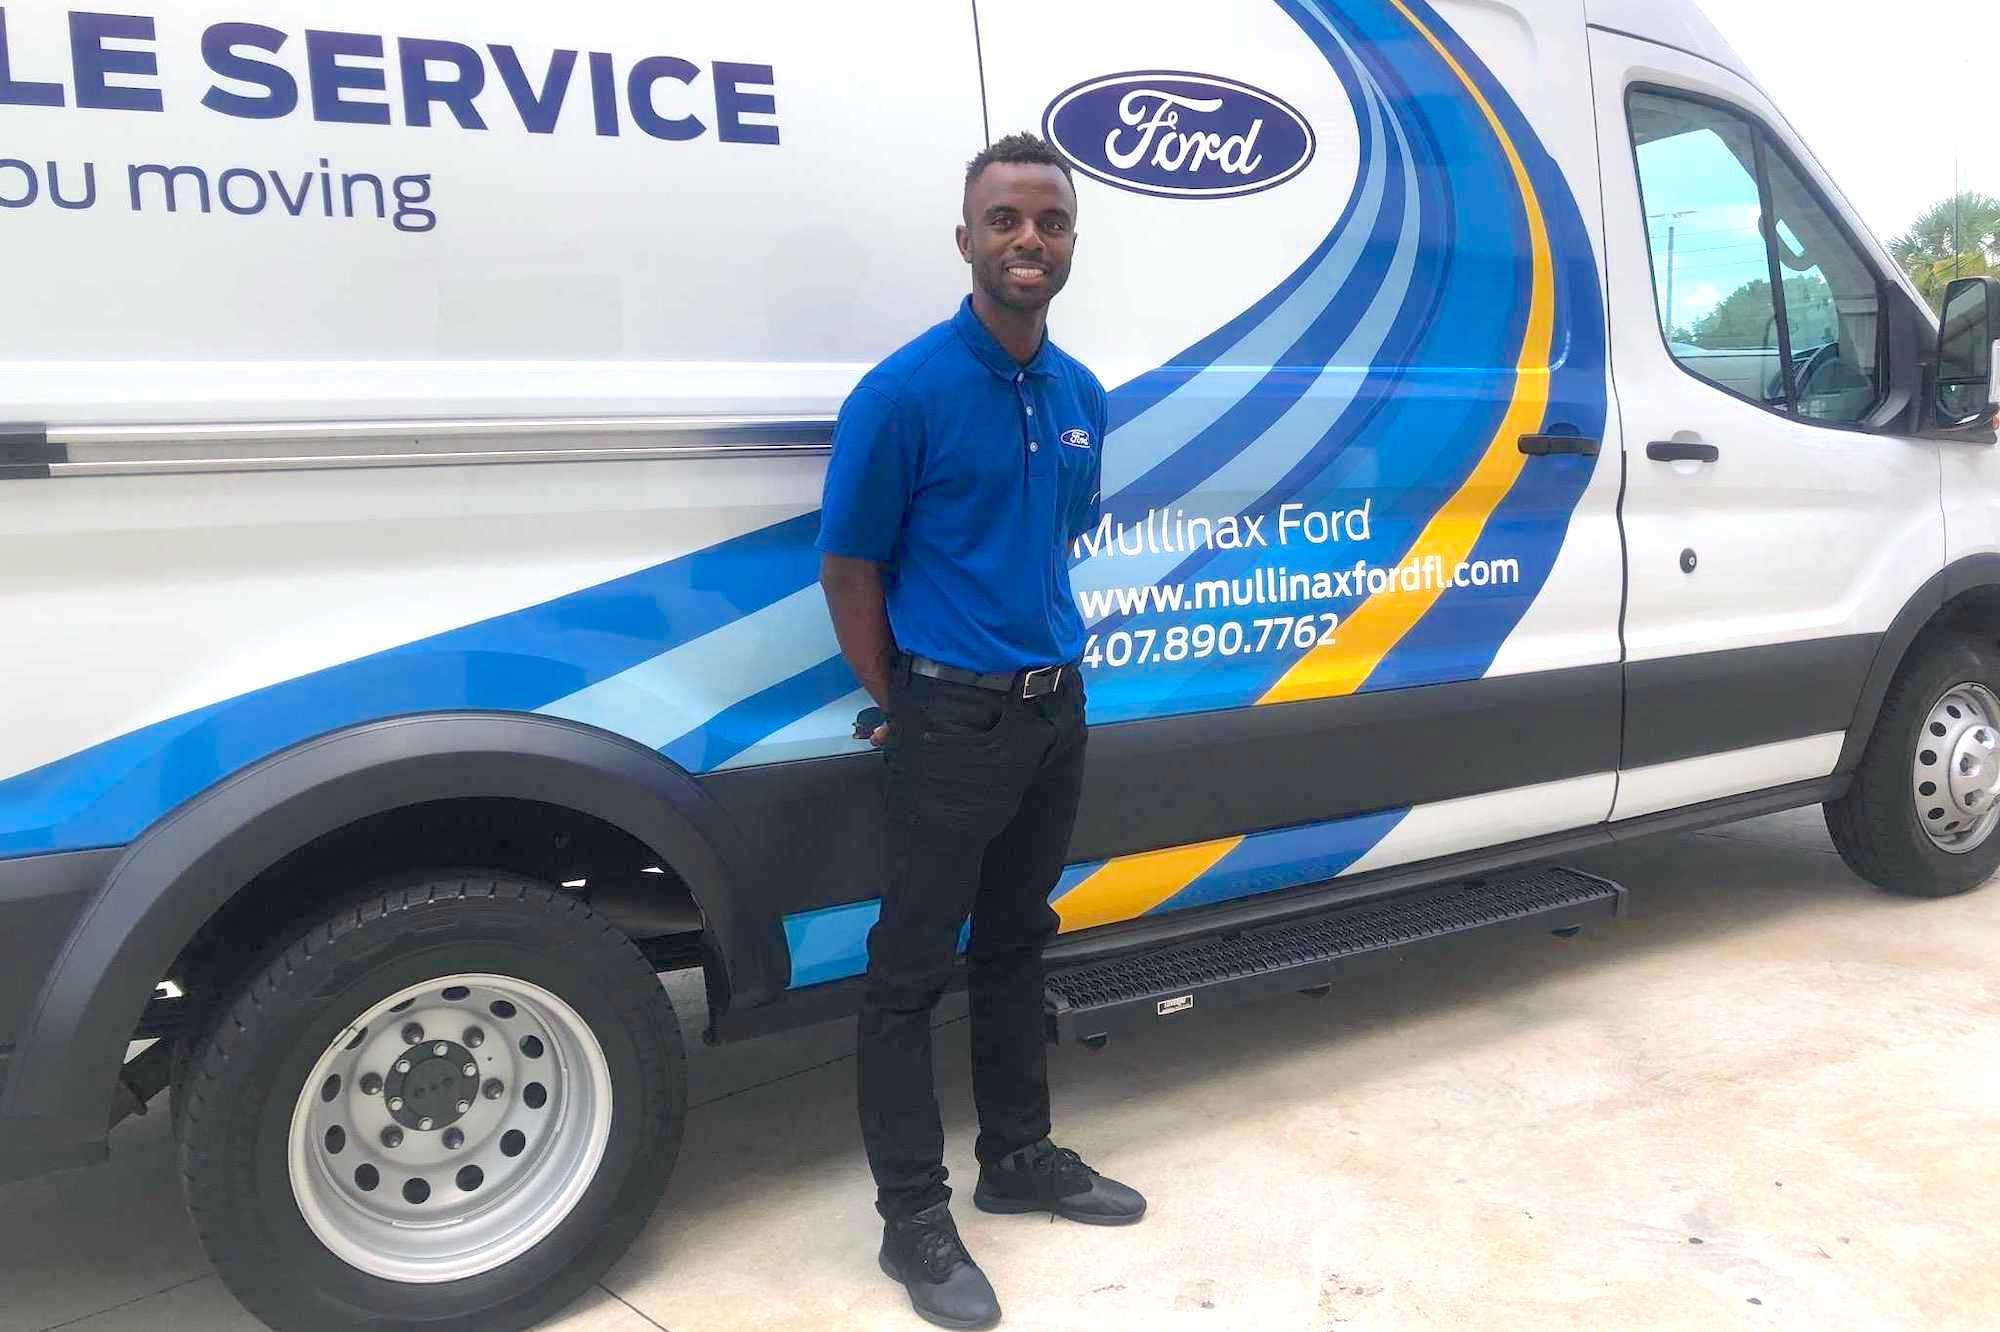 Ford Mobile Service Technician with Van - Mullinax Ford of Central Florida